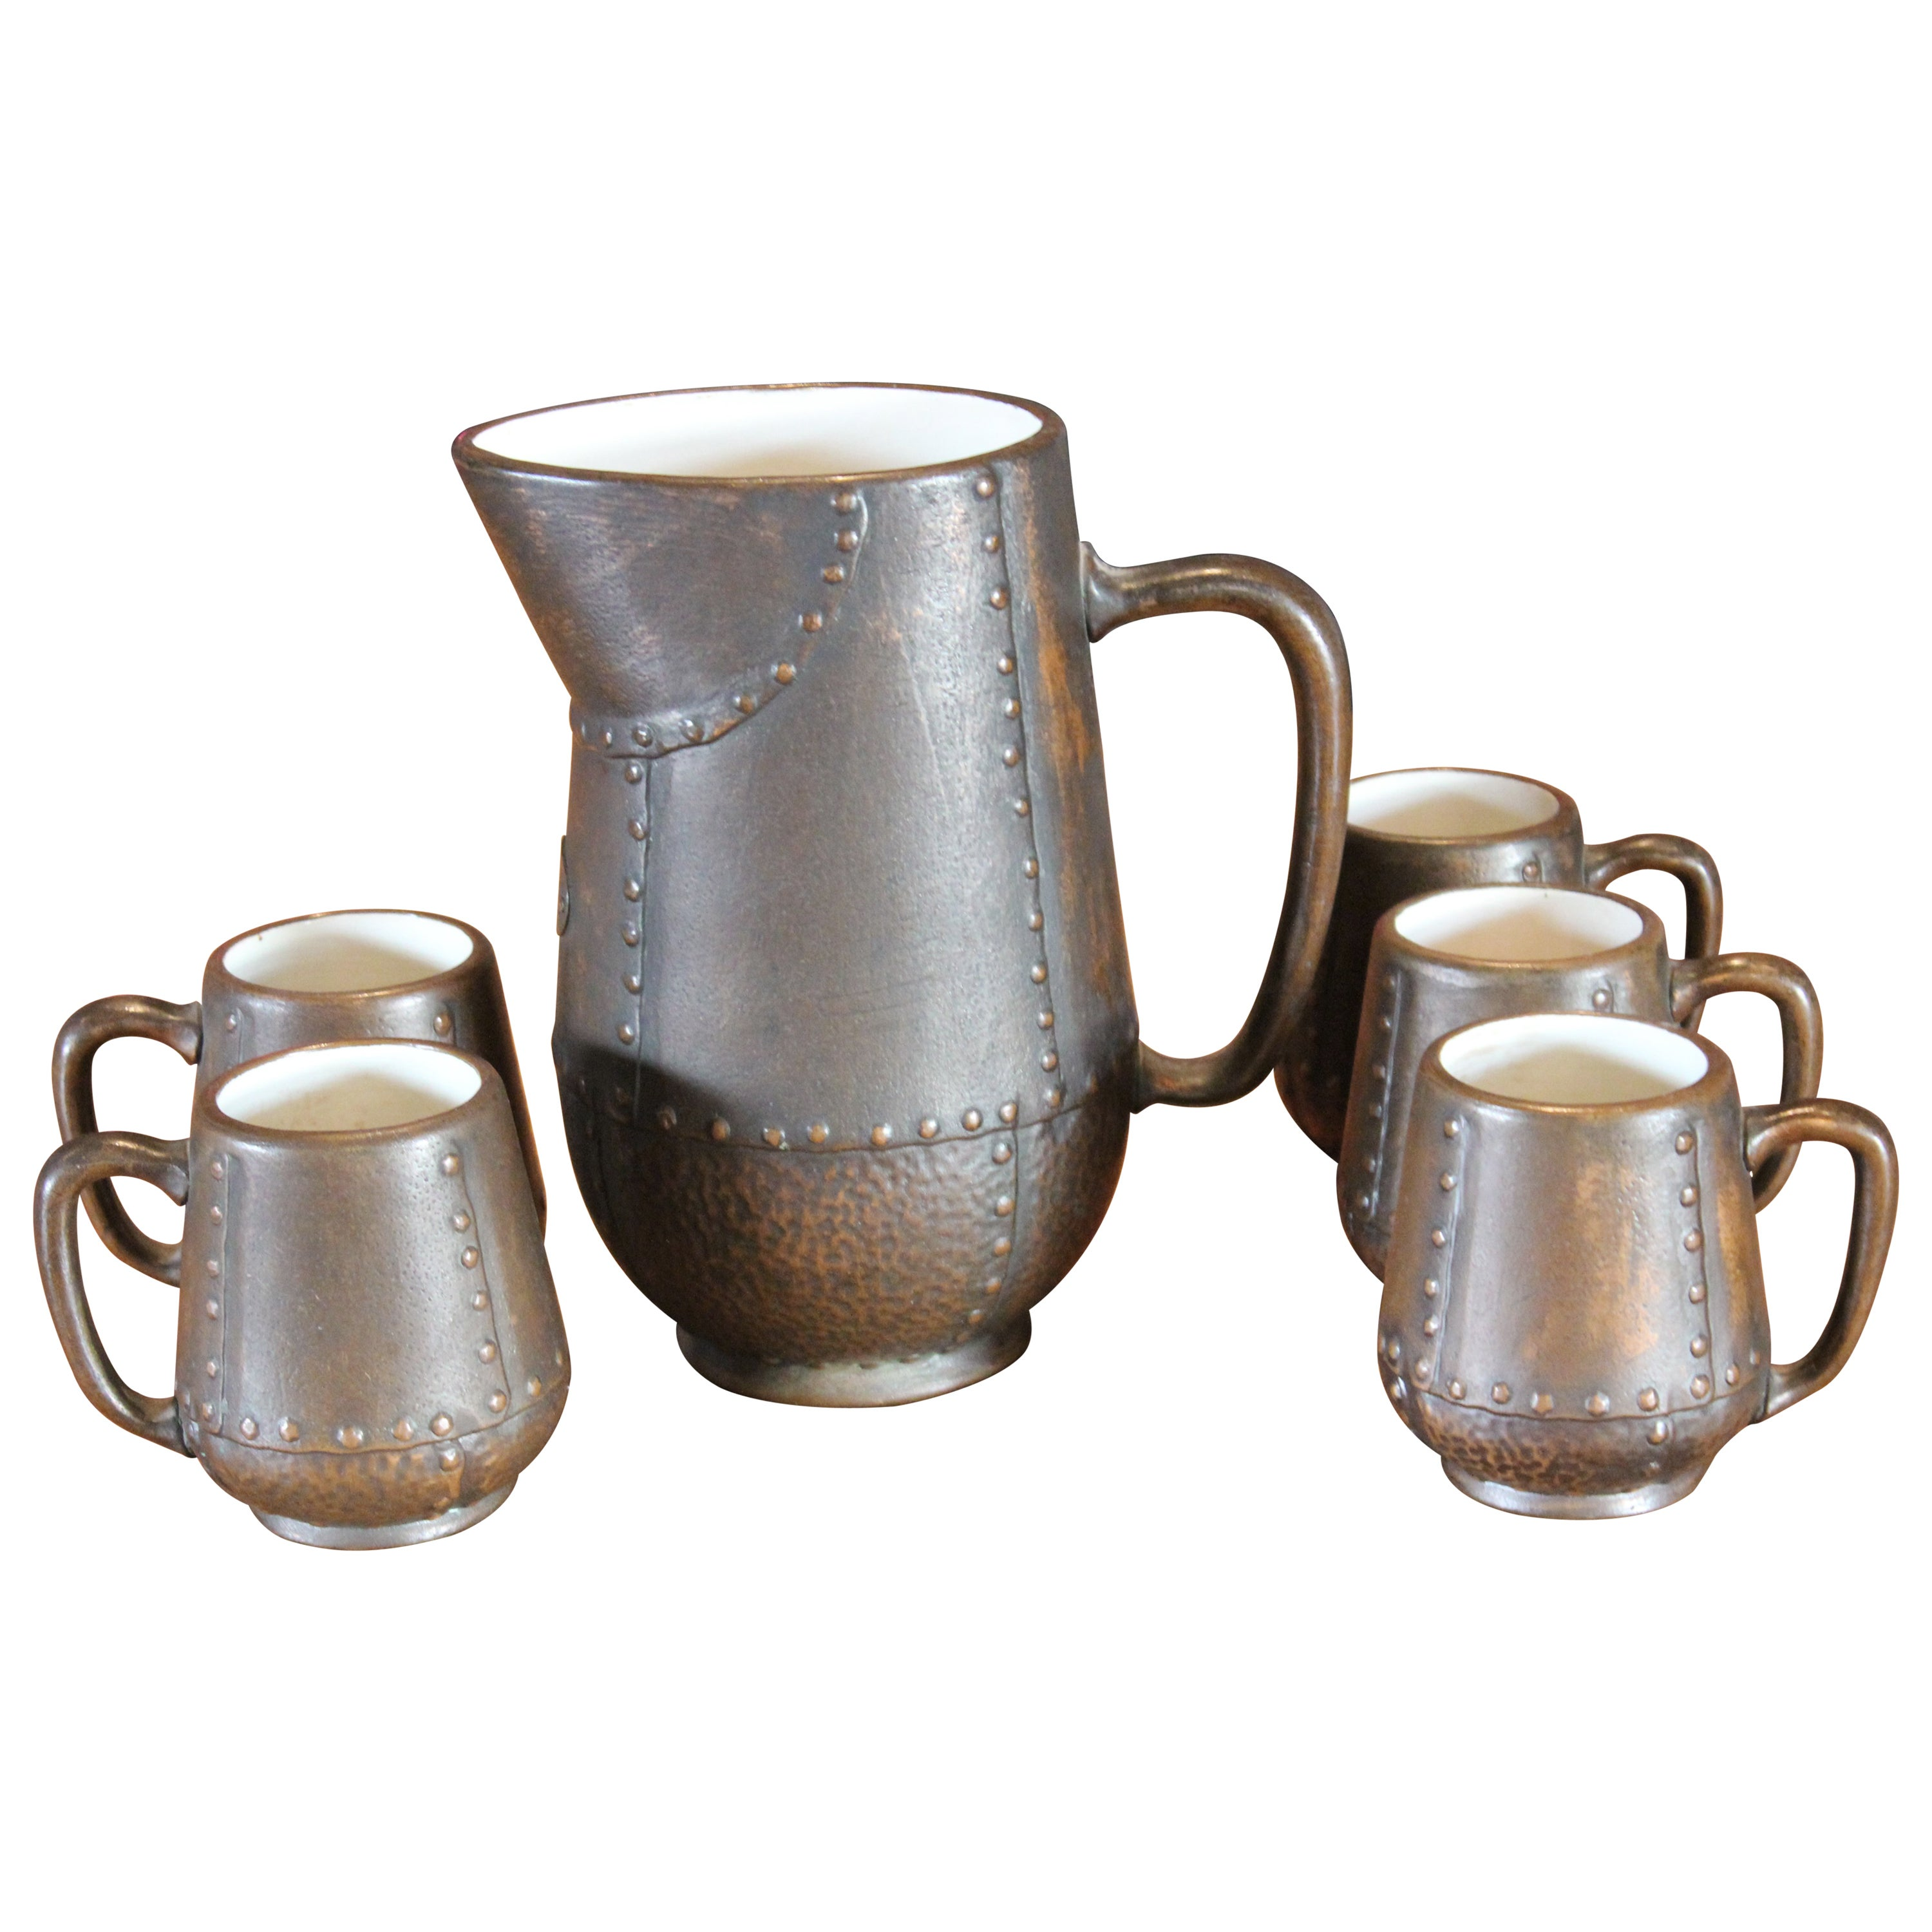 Pitcher and Five Cup Set by Clewell Pottery